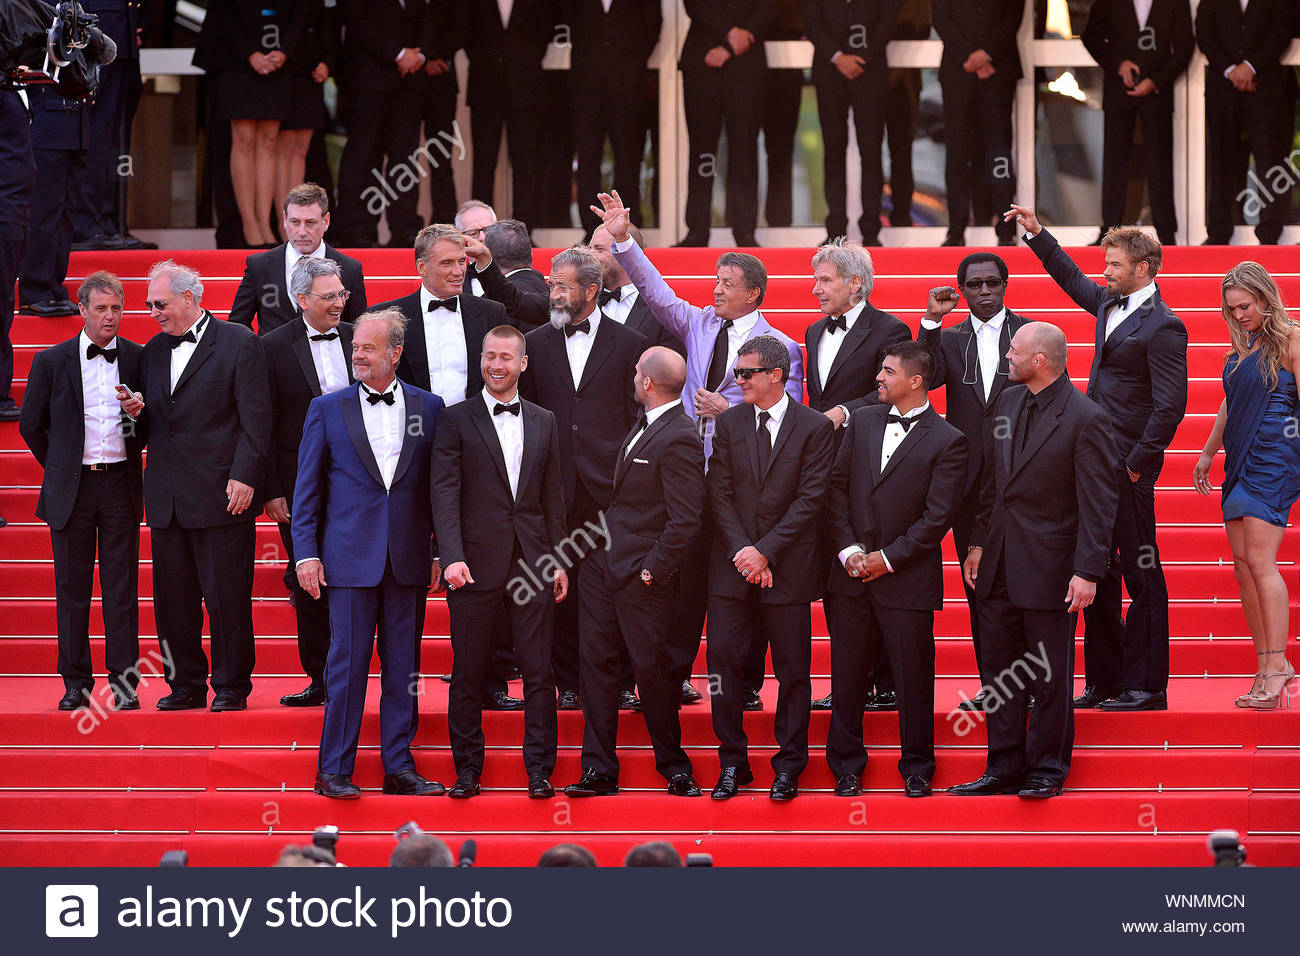 """Cannes, France - The cast of """"Expendables 3"""" at the """"The Homesman"""" premiere during the 67th Annual Cannes Film Festival. AKM-GSI May 18, 2014 Stock Photo"""